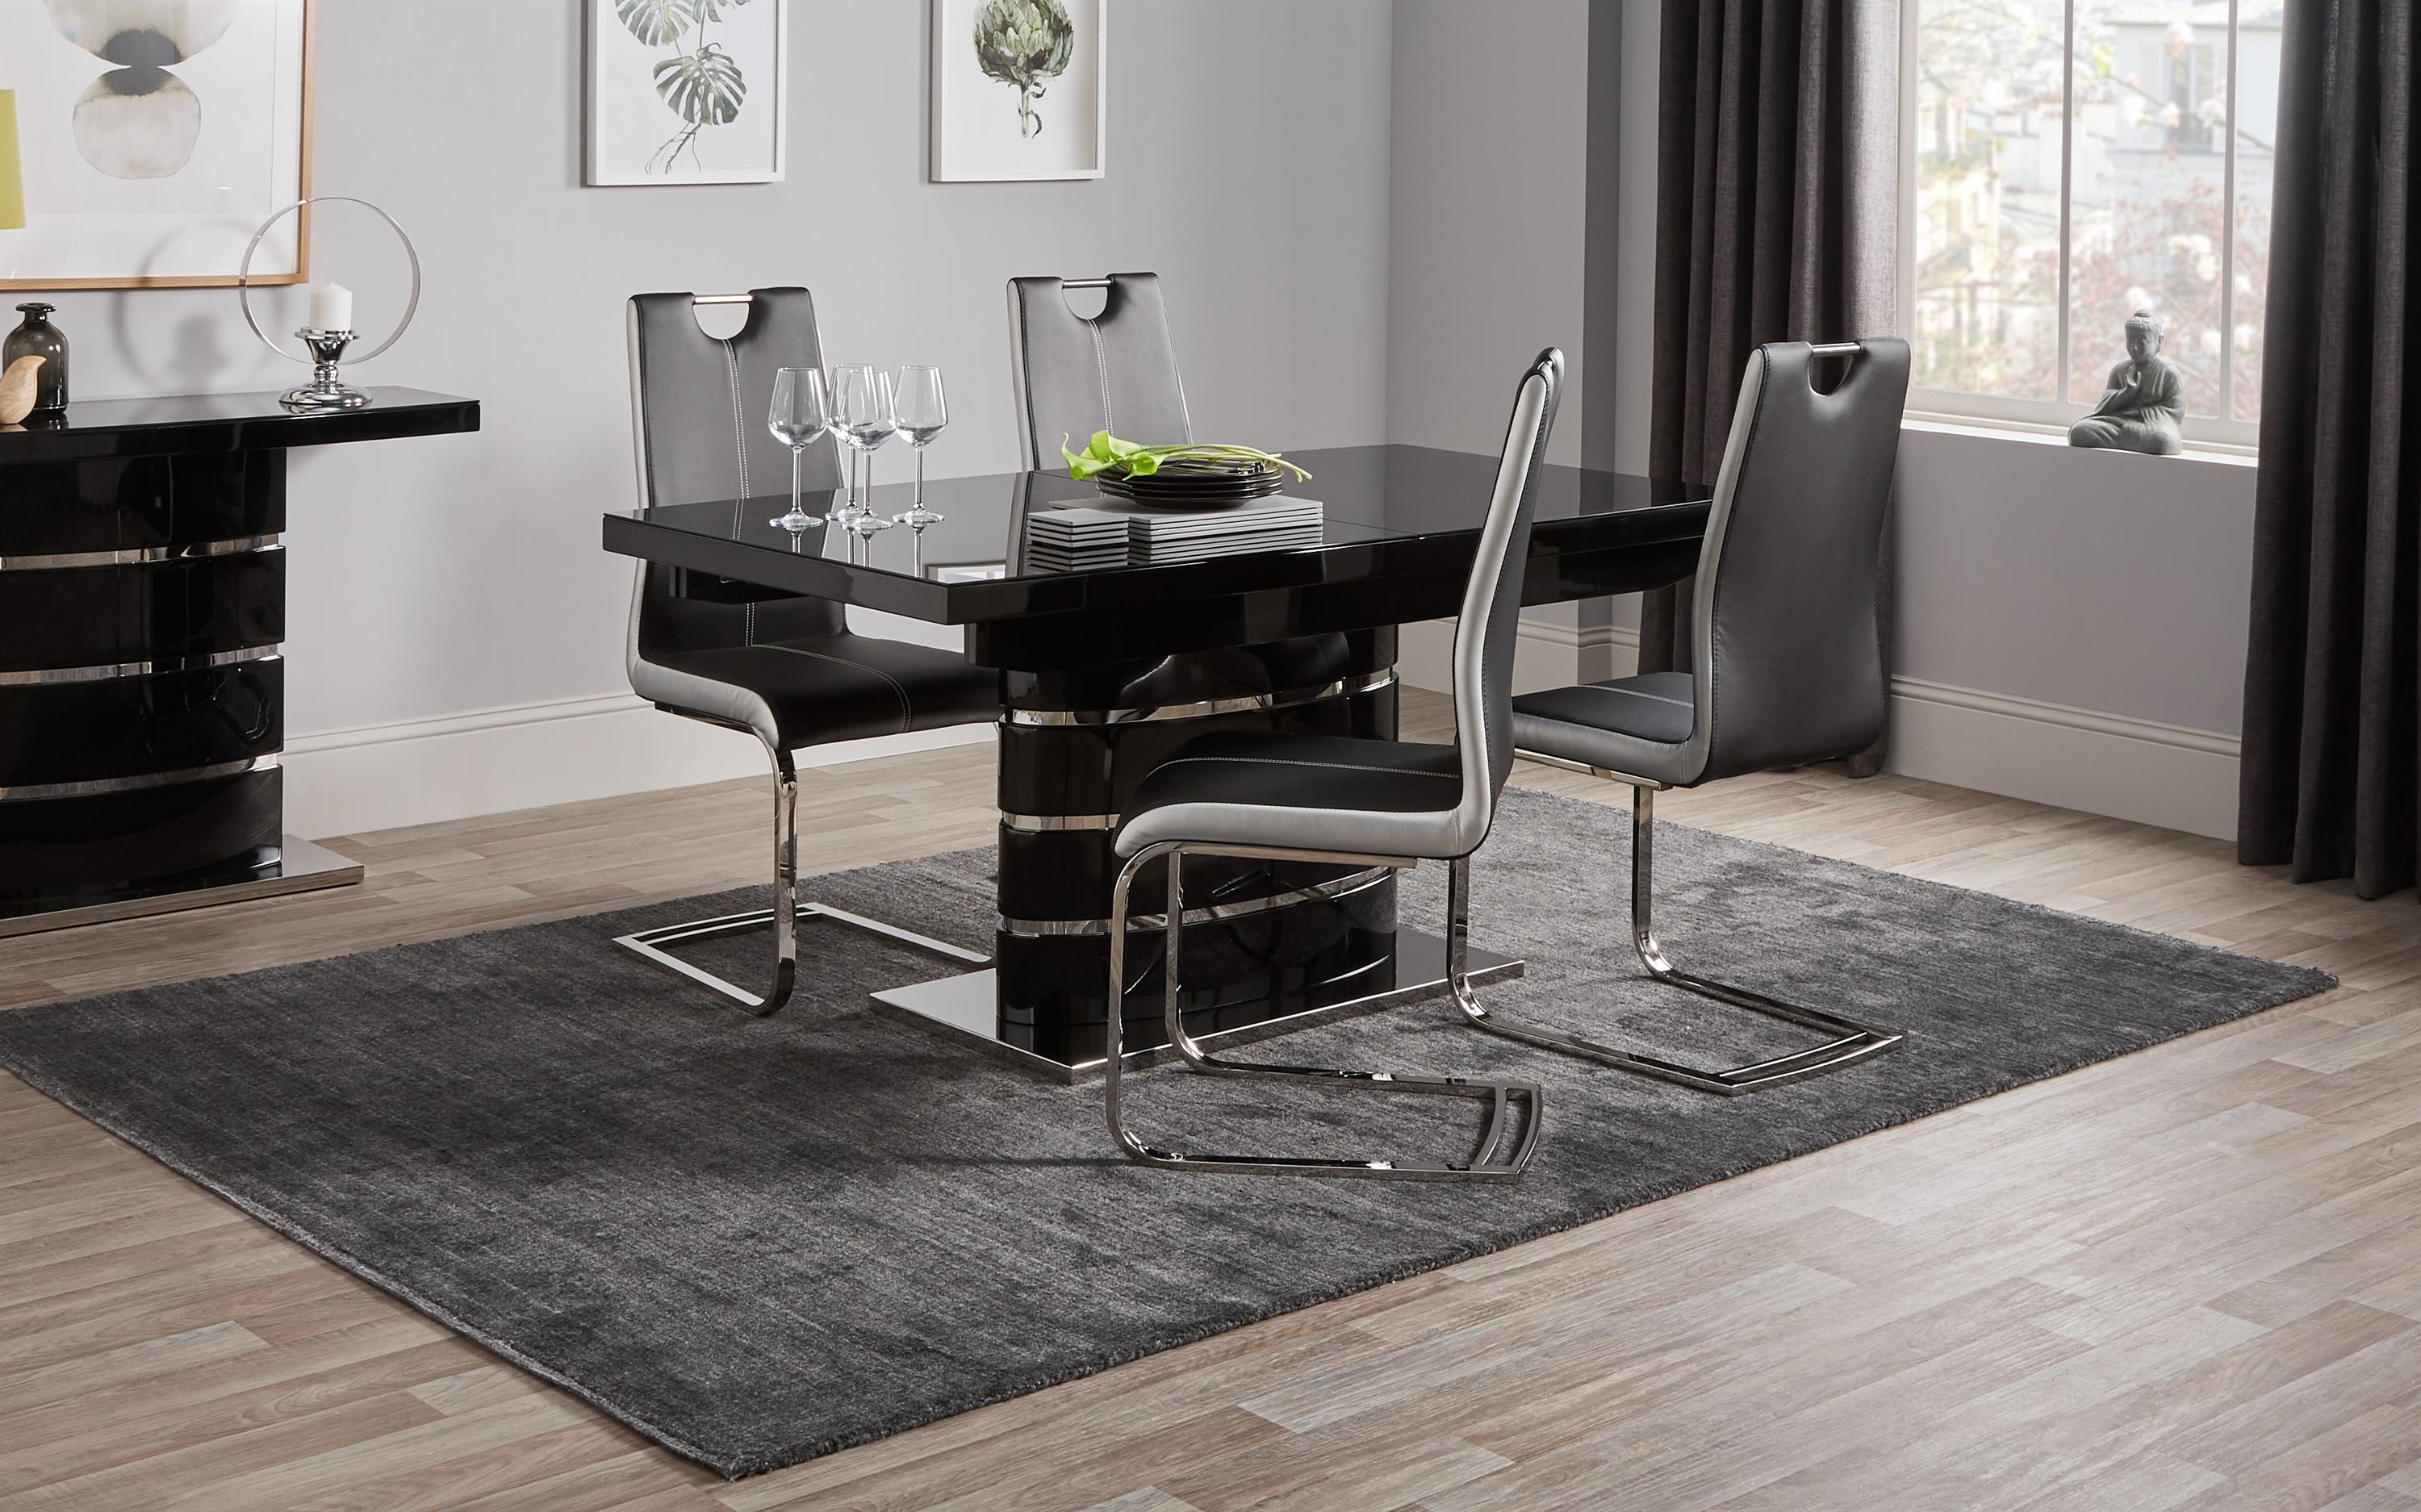 Rimini Black Dining Table & 4 Chairs